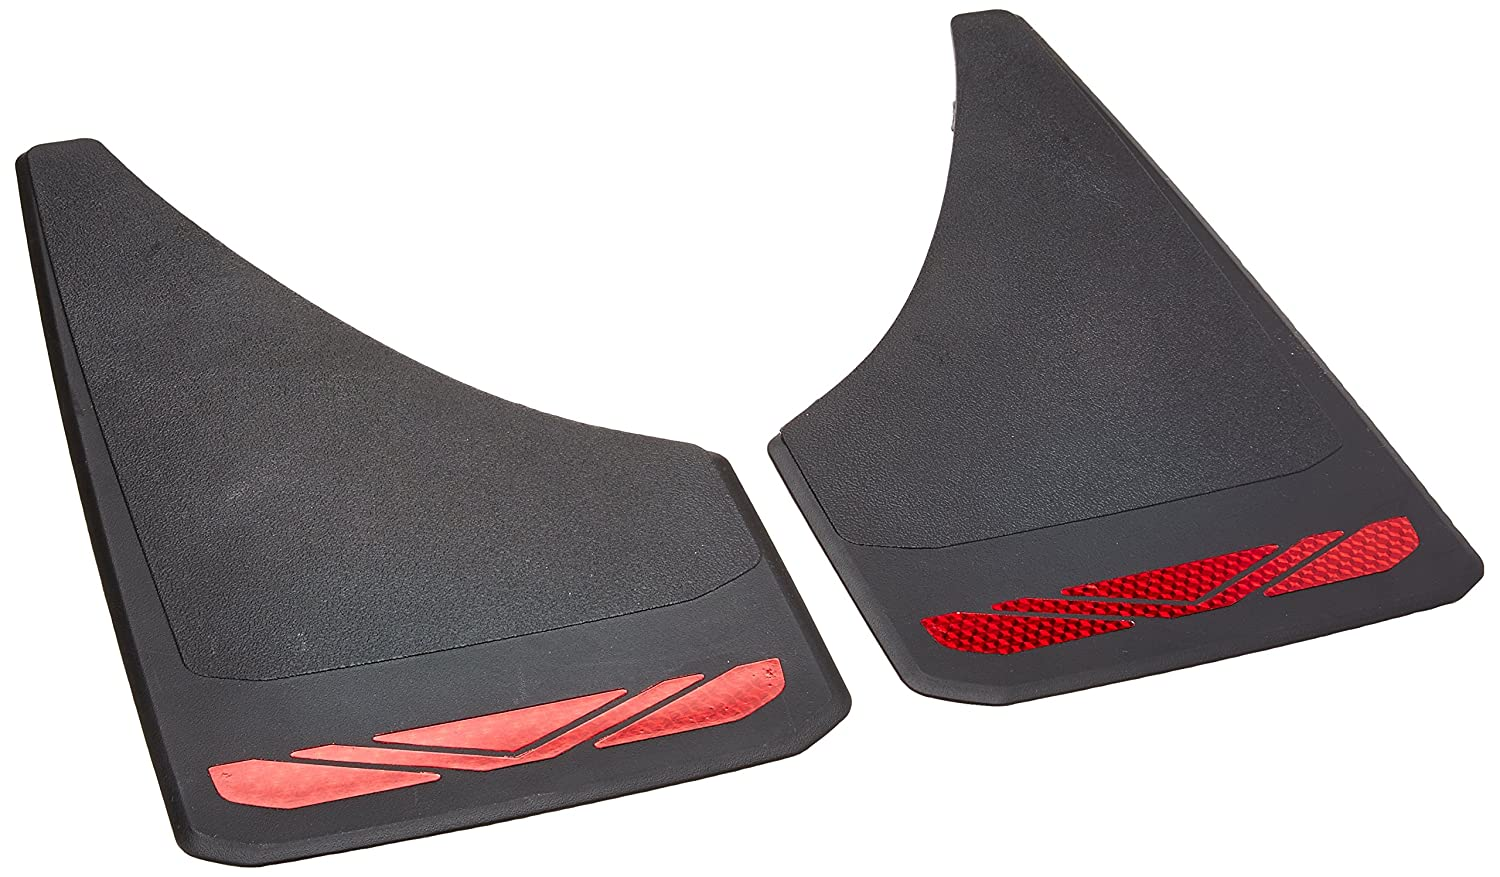 RoadSport 4649 A Series Universal Fit Premiere Splash Guard Powerflow Black with Red Prism; 12-3//4 Height x 7-3//8 Wide